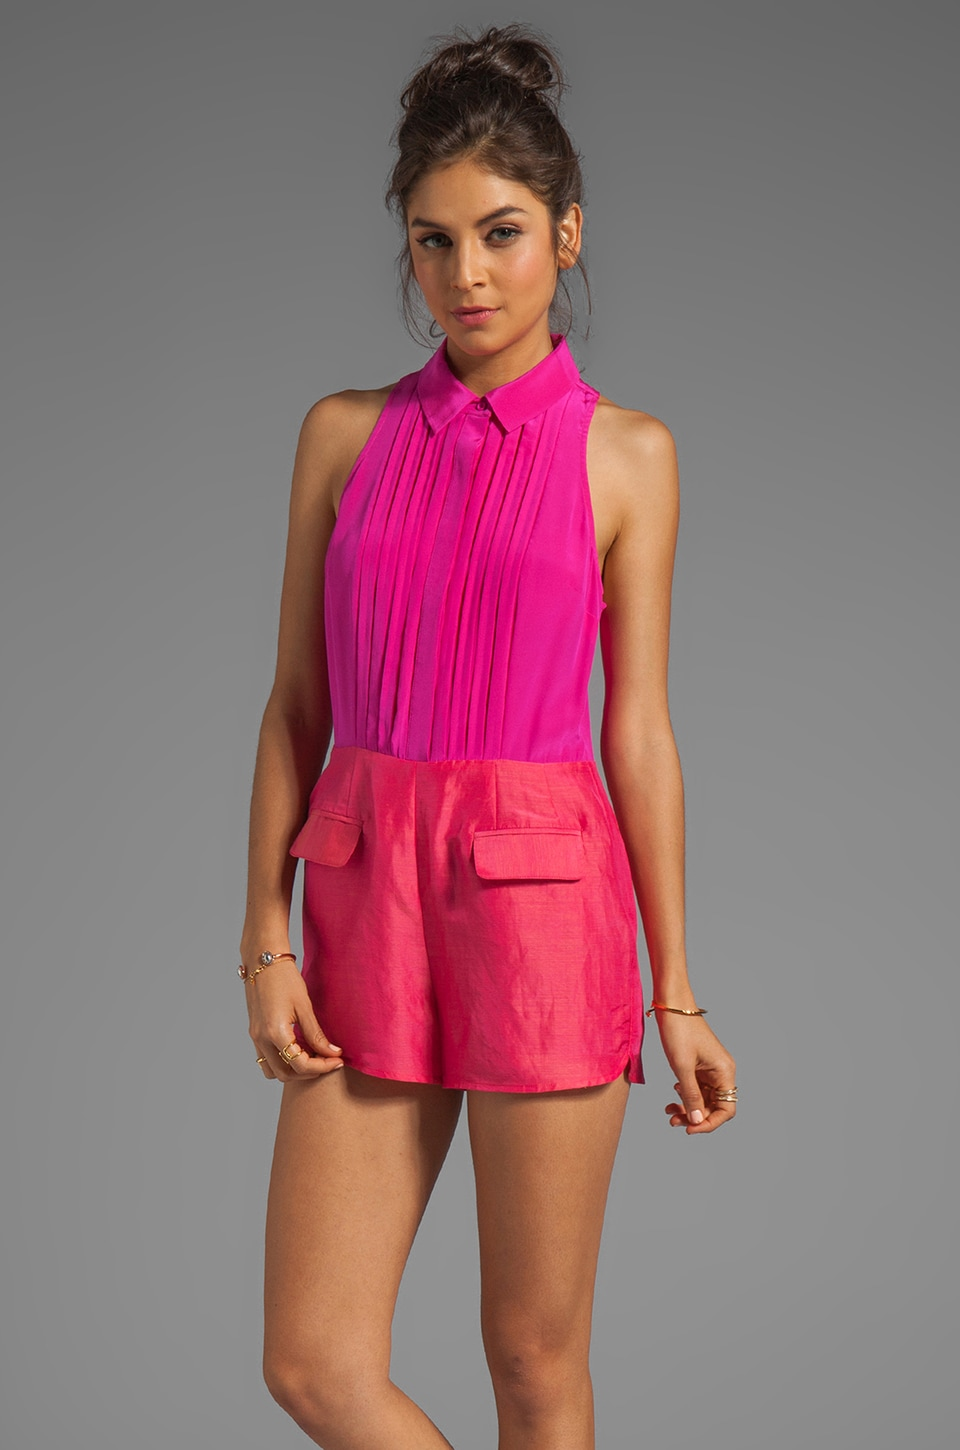 harlyn Collared Strappy Romper in Hot Pink